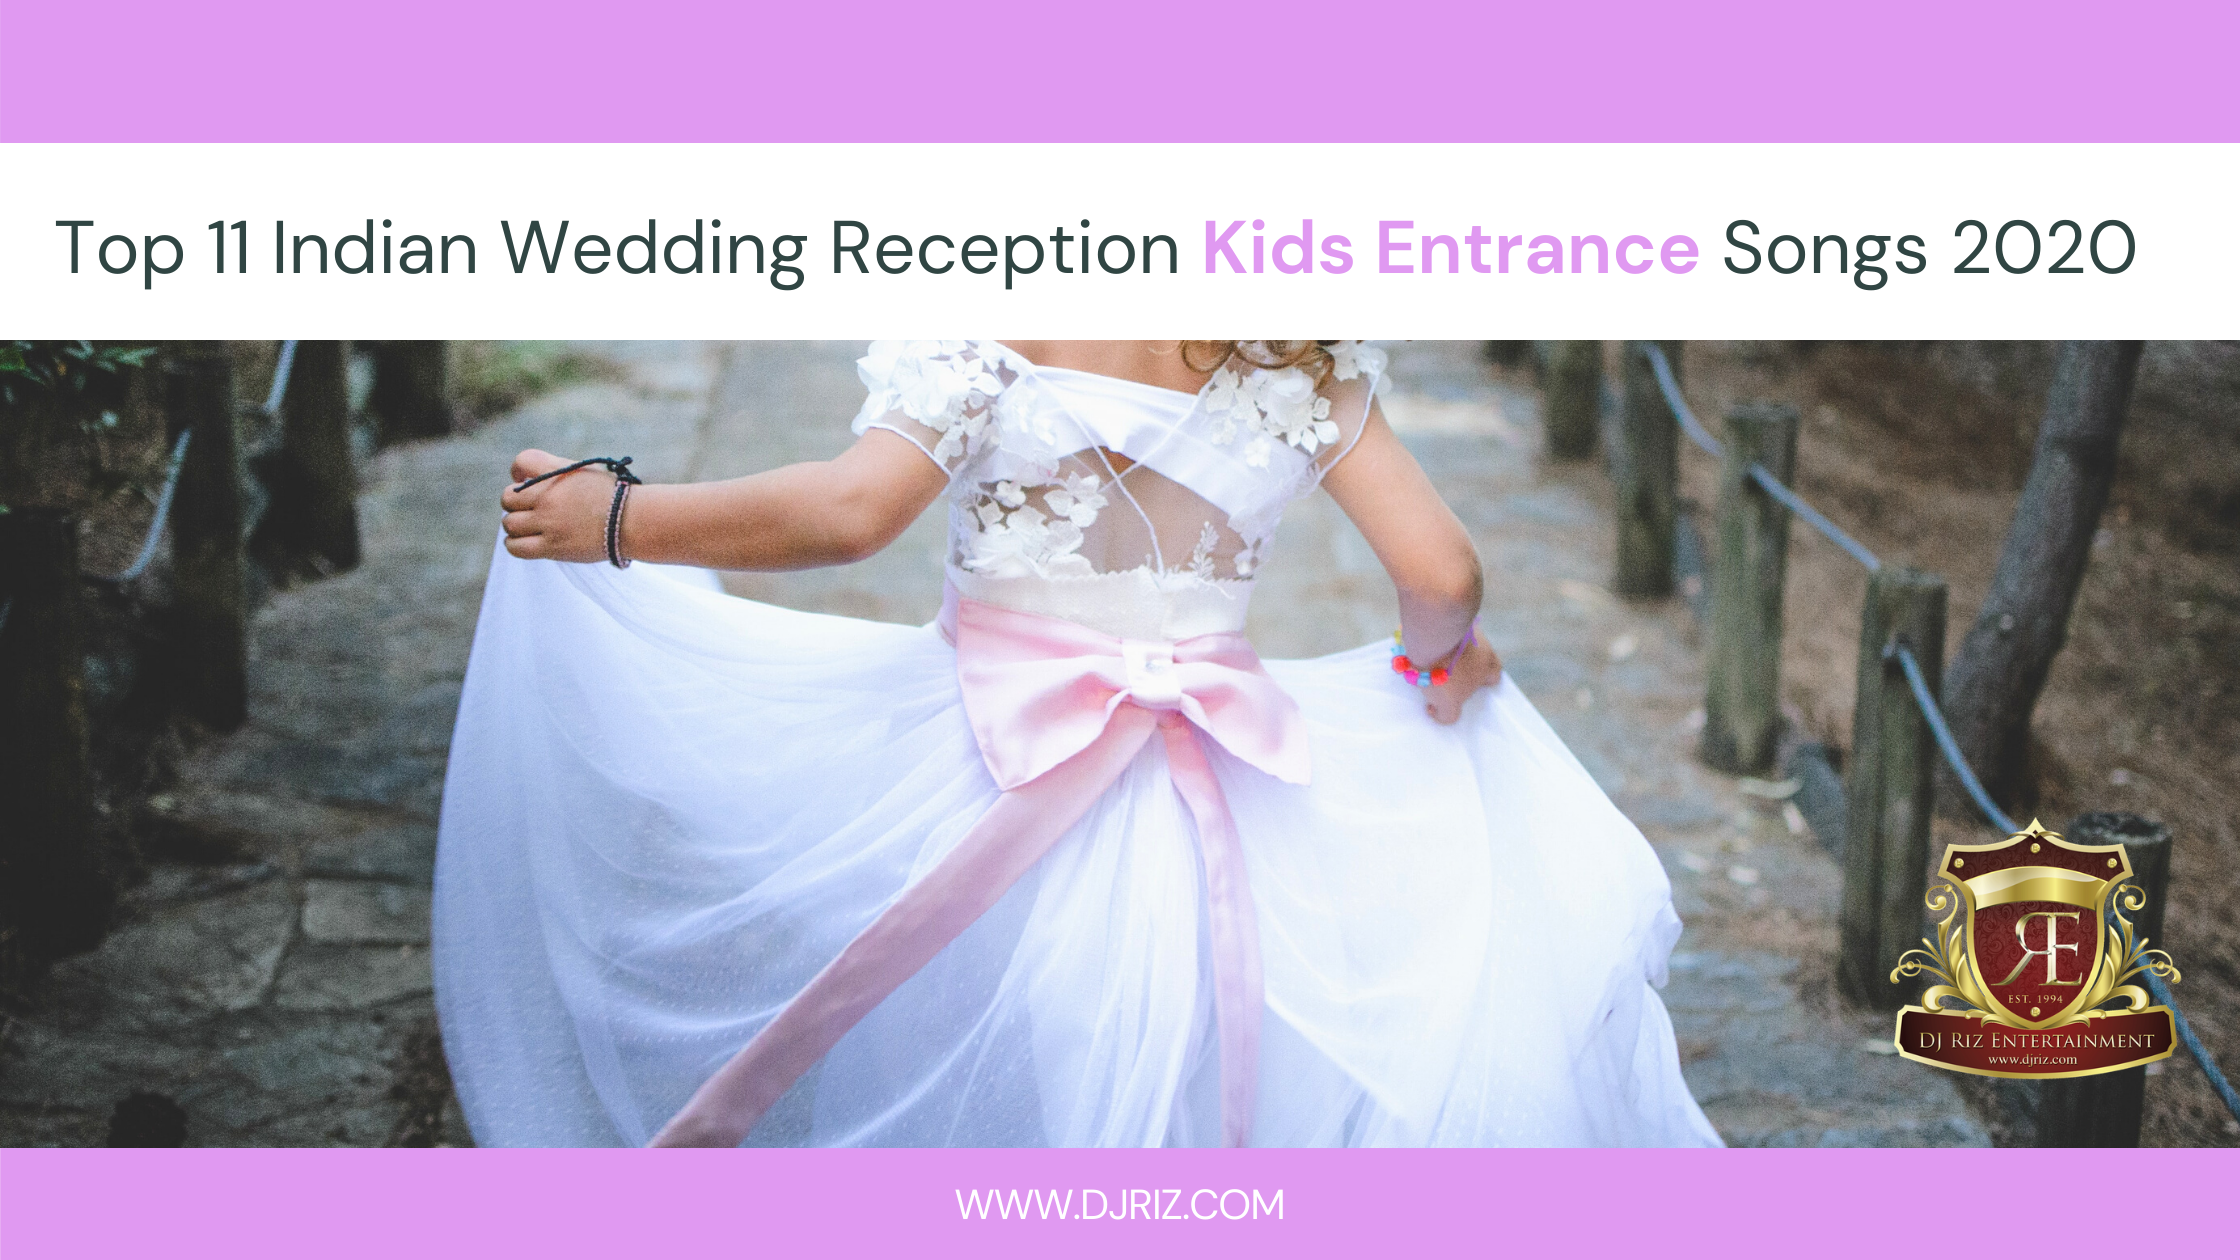 Top 11 Indian Wedding Reception Kids Entrance Songs 2020